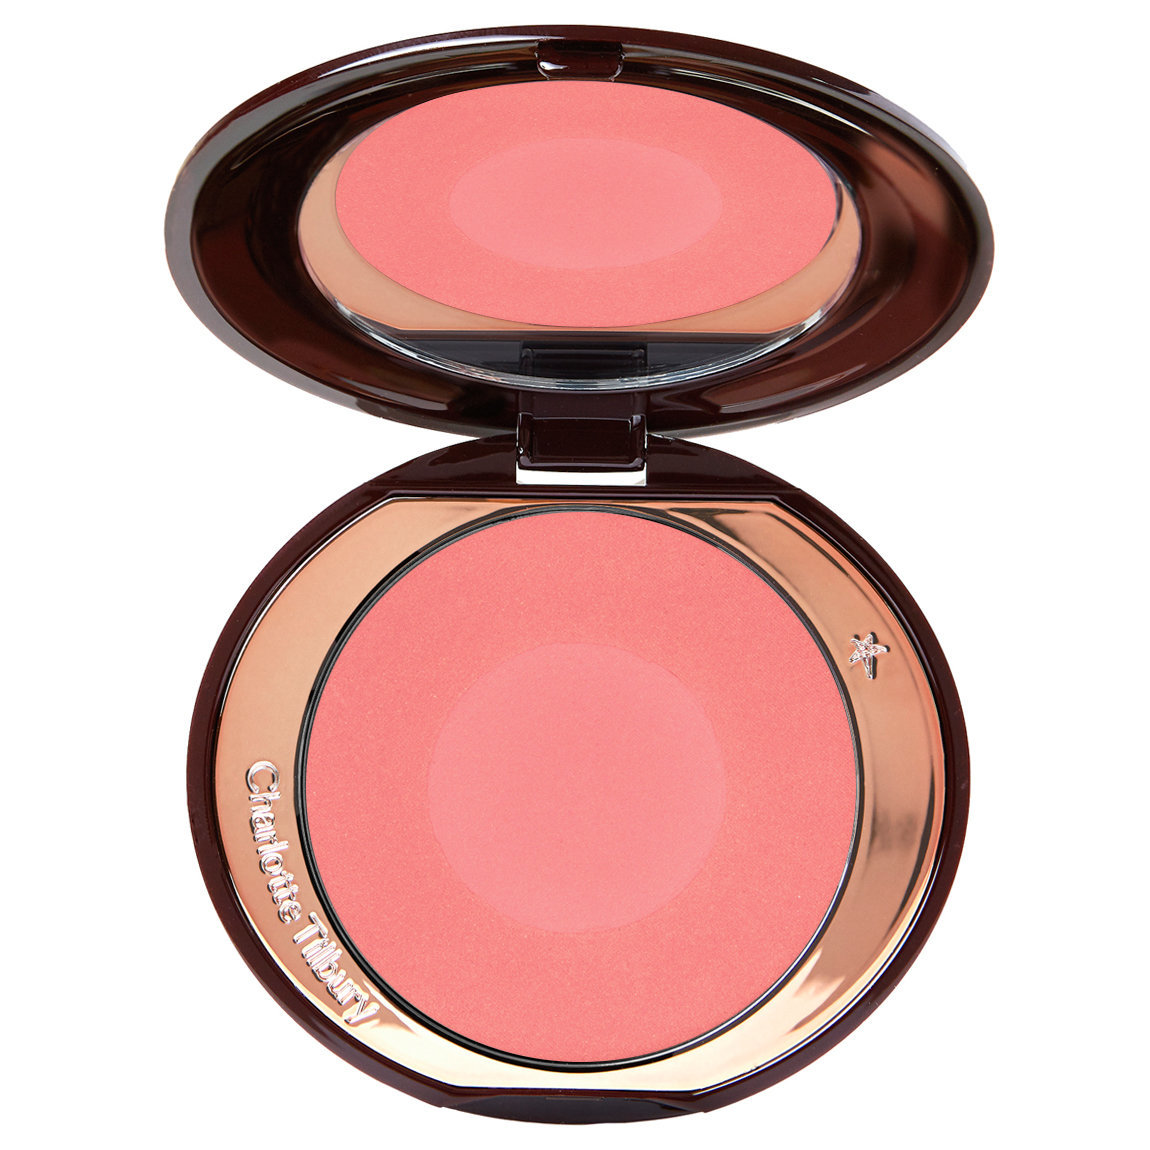 Charlotte Tilbury Cheek To Chic Love Glow alternative view 1 - product swatch.